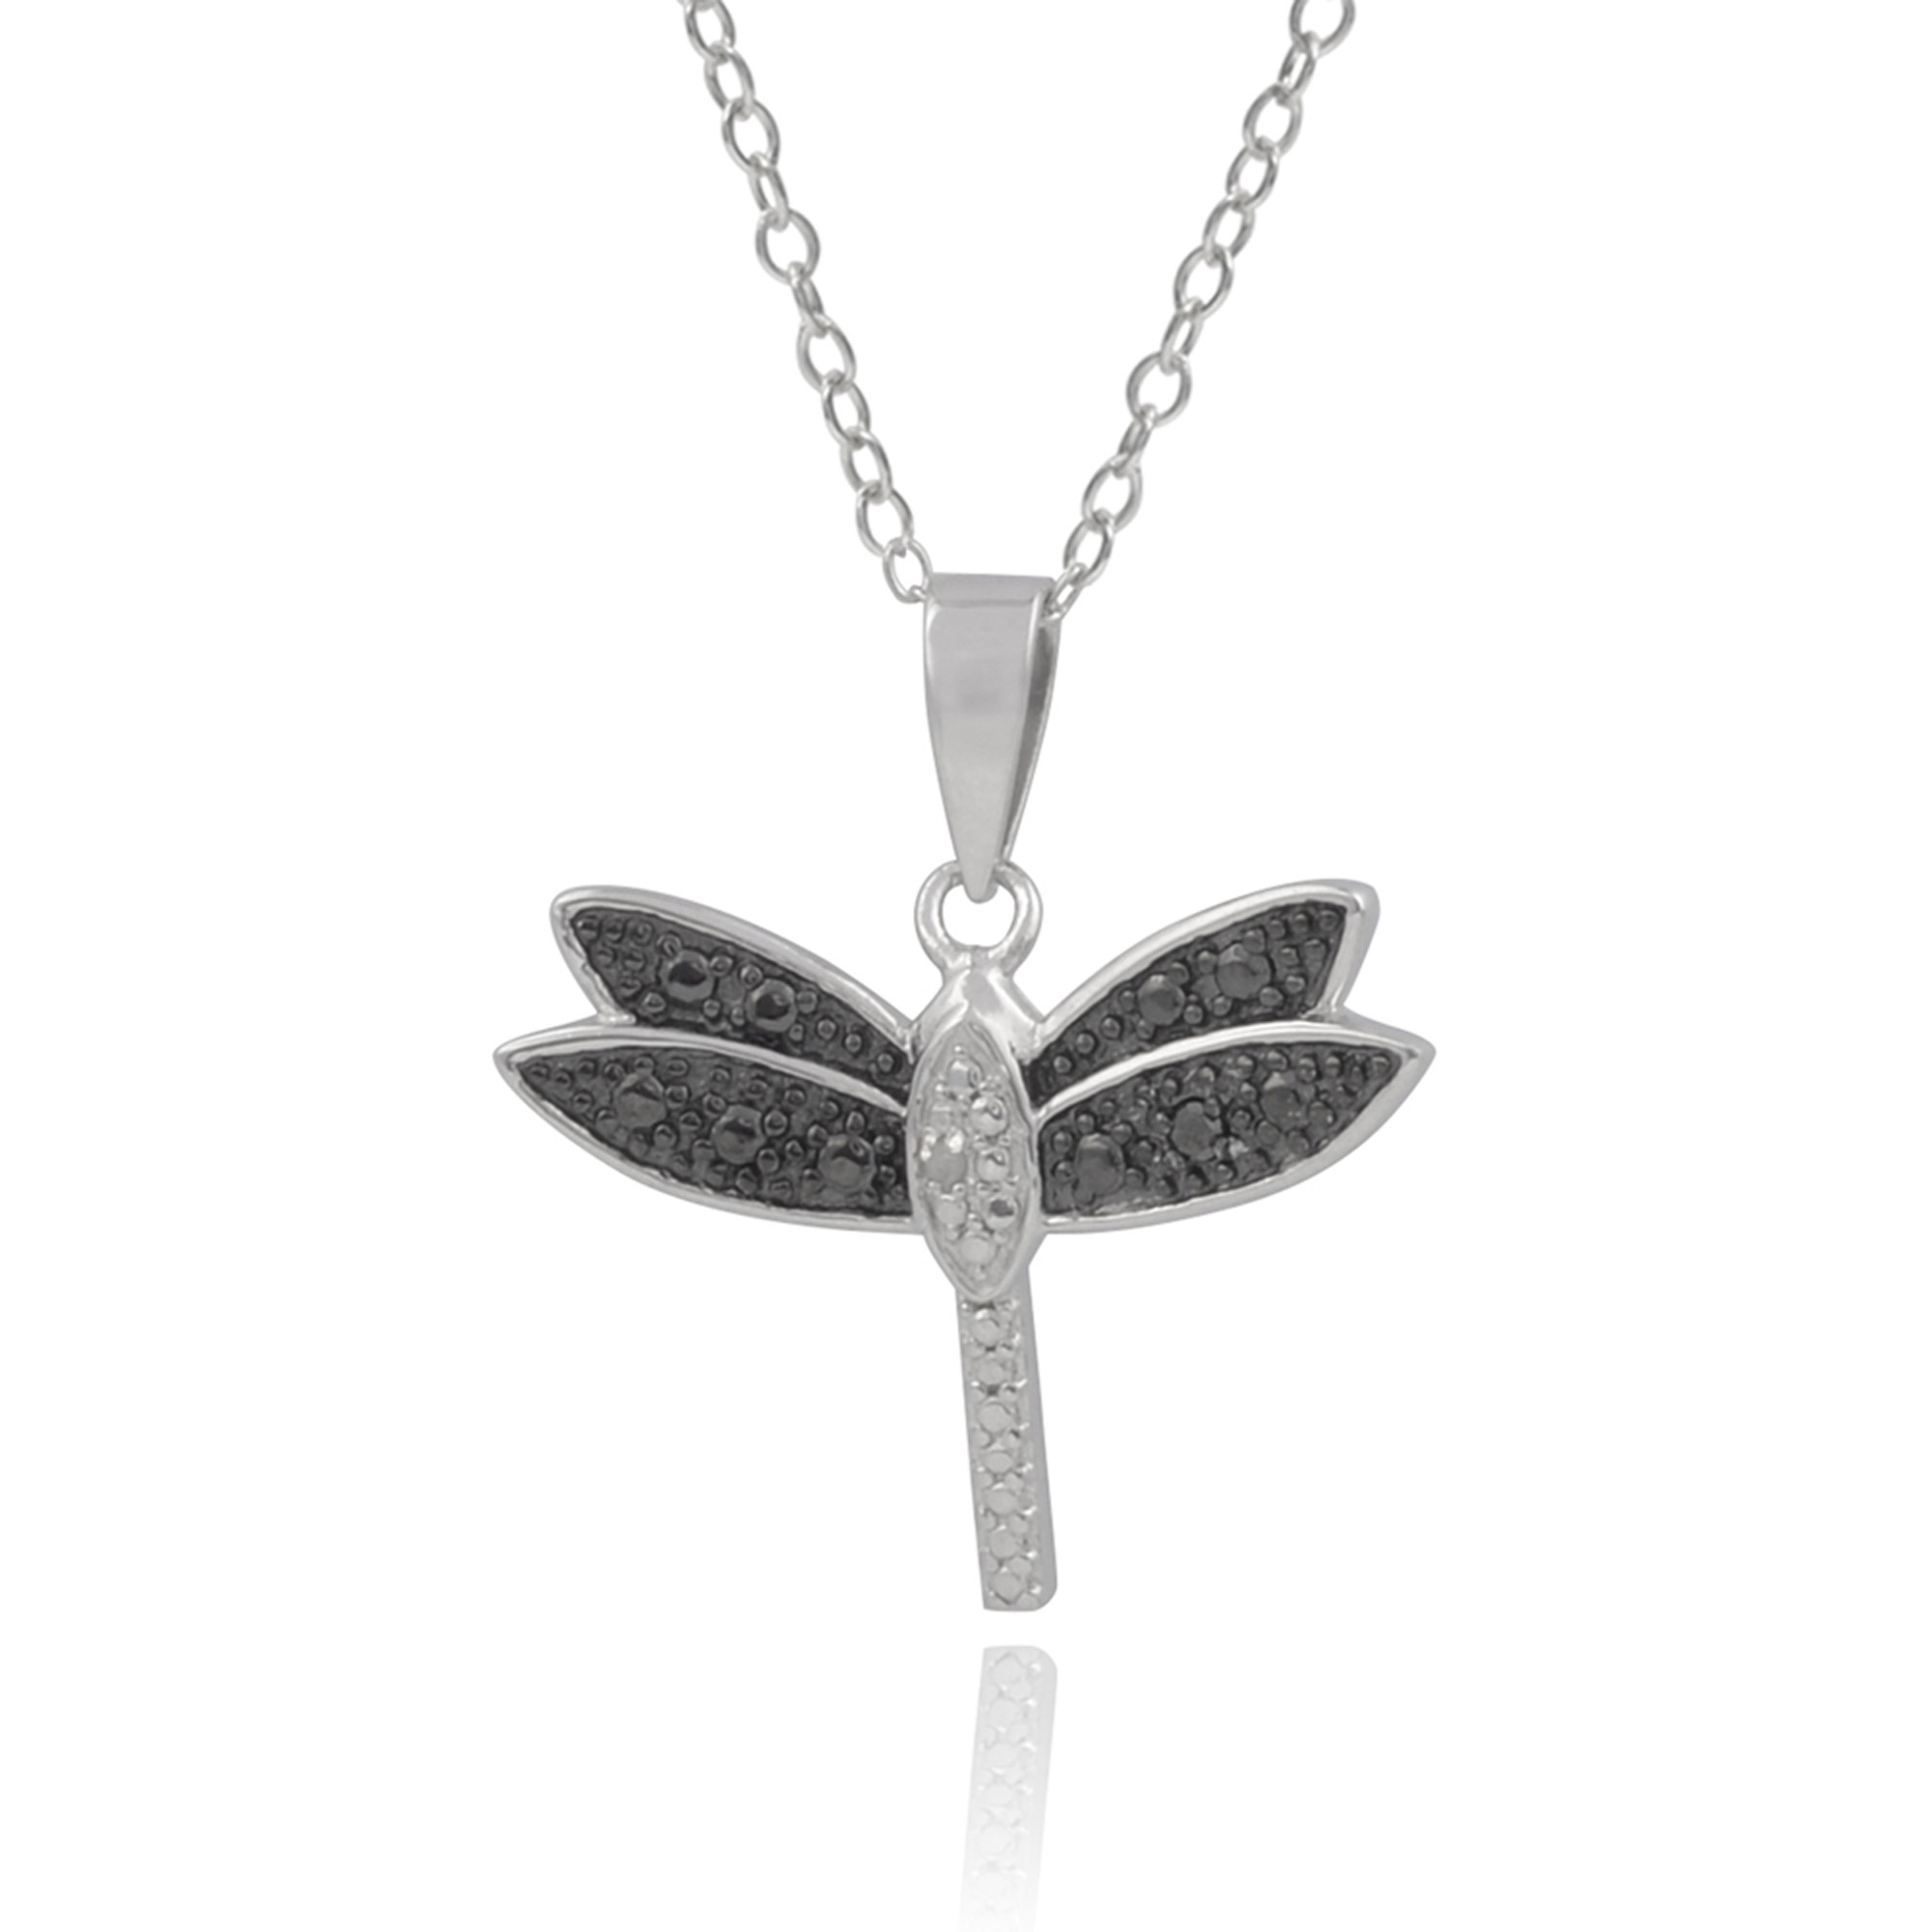 Brinley Co. Women's 1/5 Carat T.W. Diamond Sterling Silver Dragonfly Pendant Fashion Necklace, Black